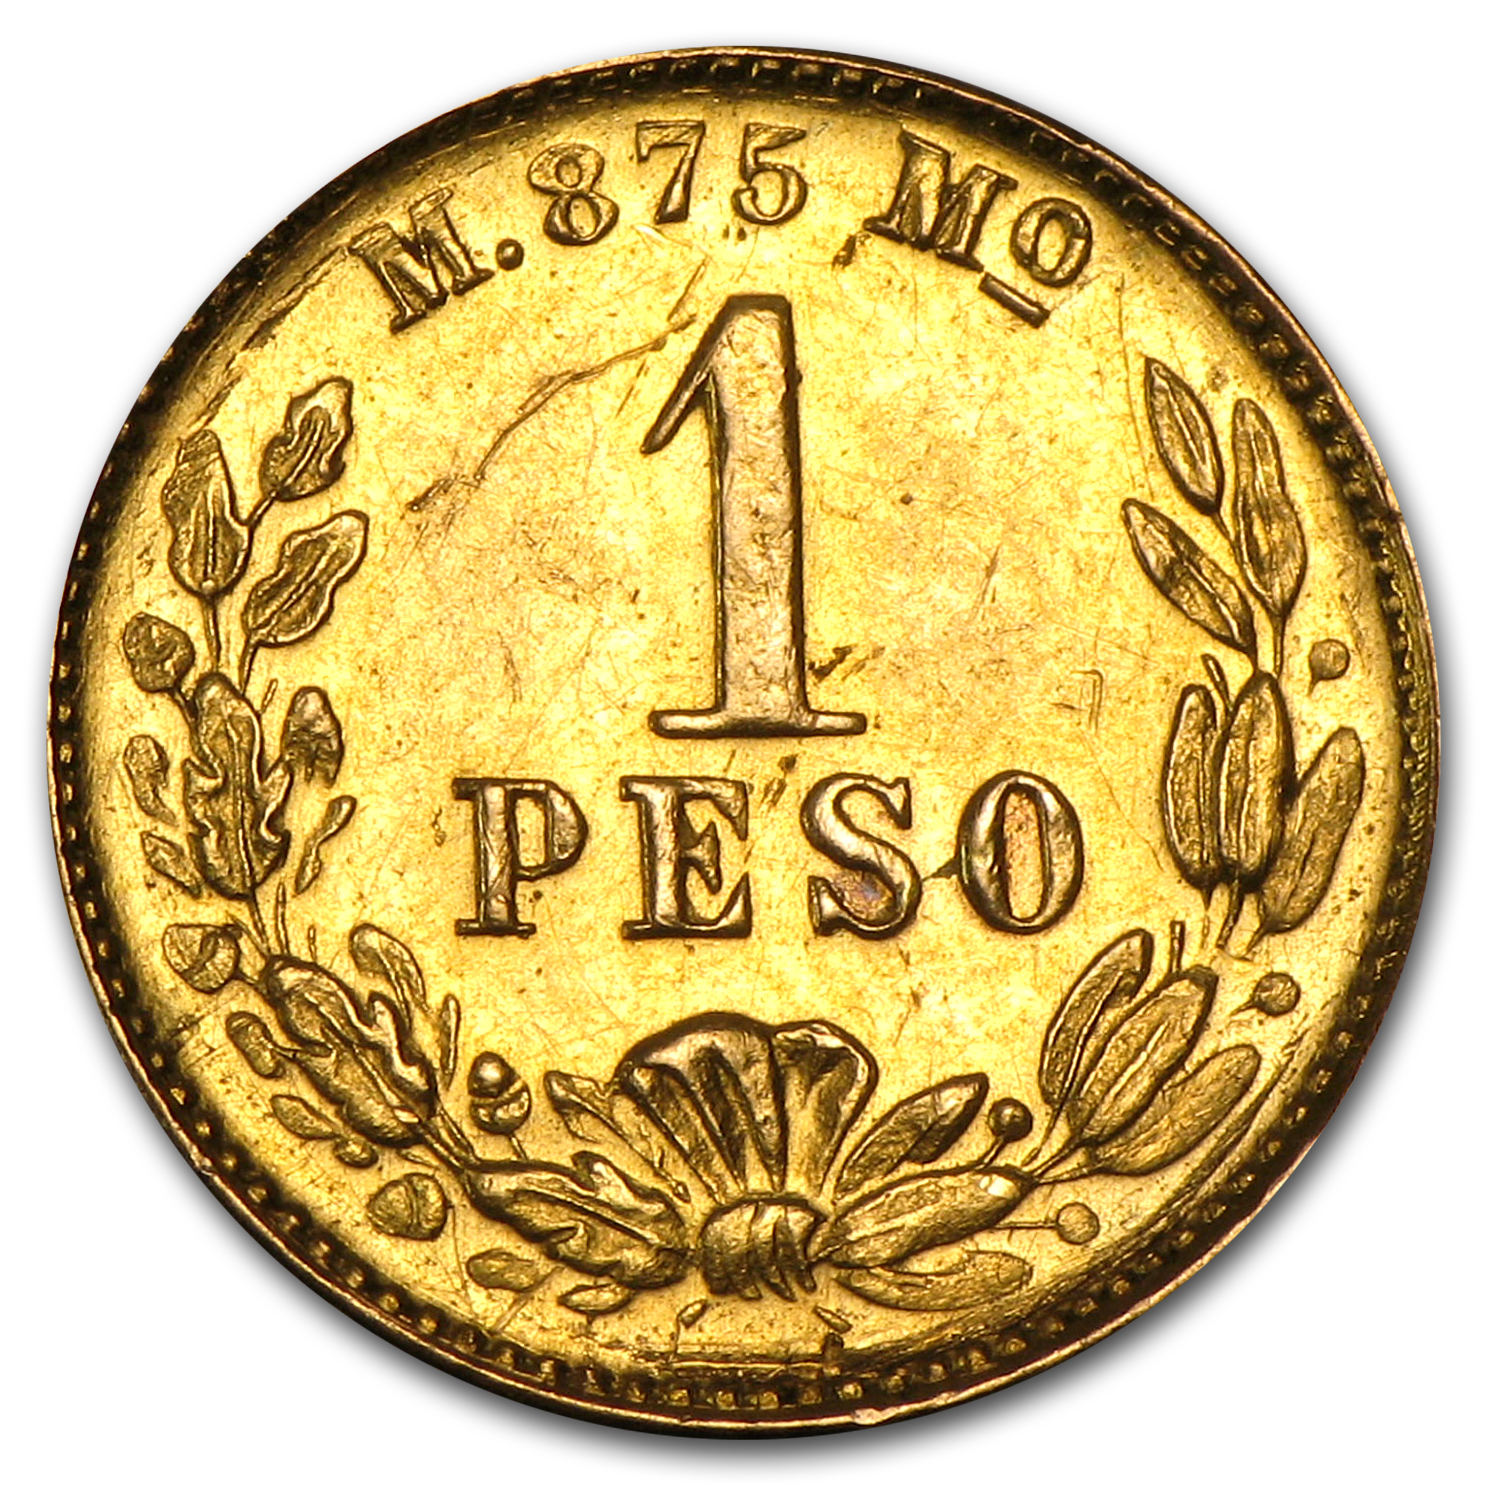 1898/7-Mo M Mexican Gold Peso (Almost Uncirculated)